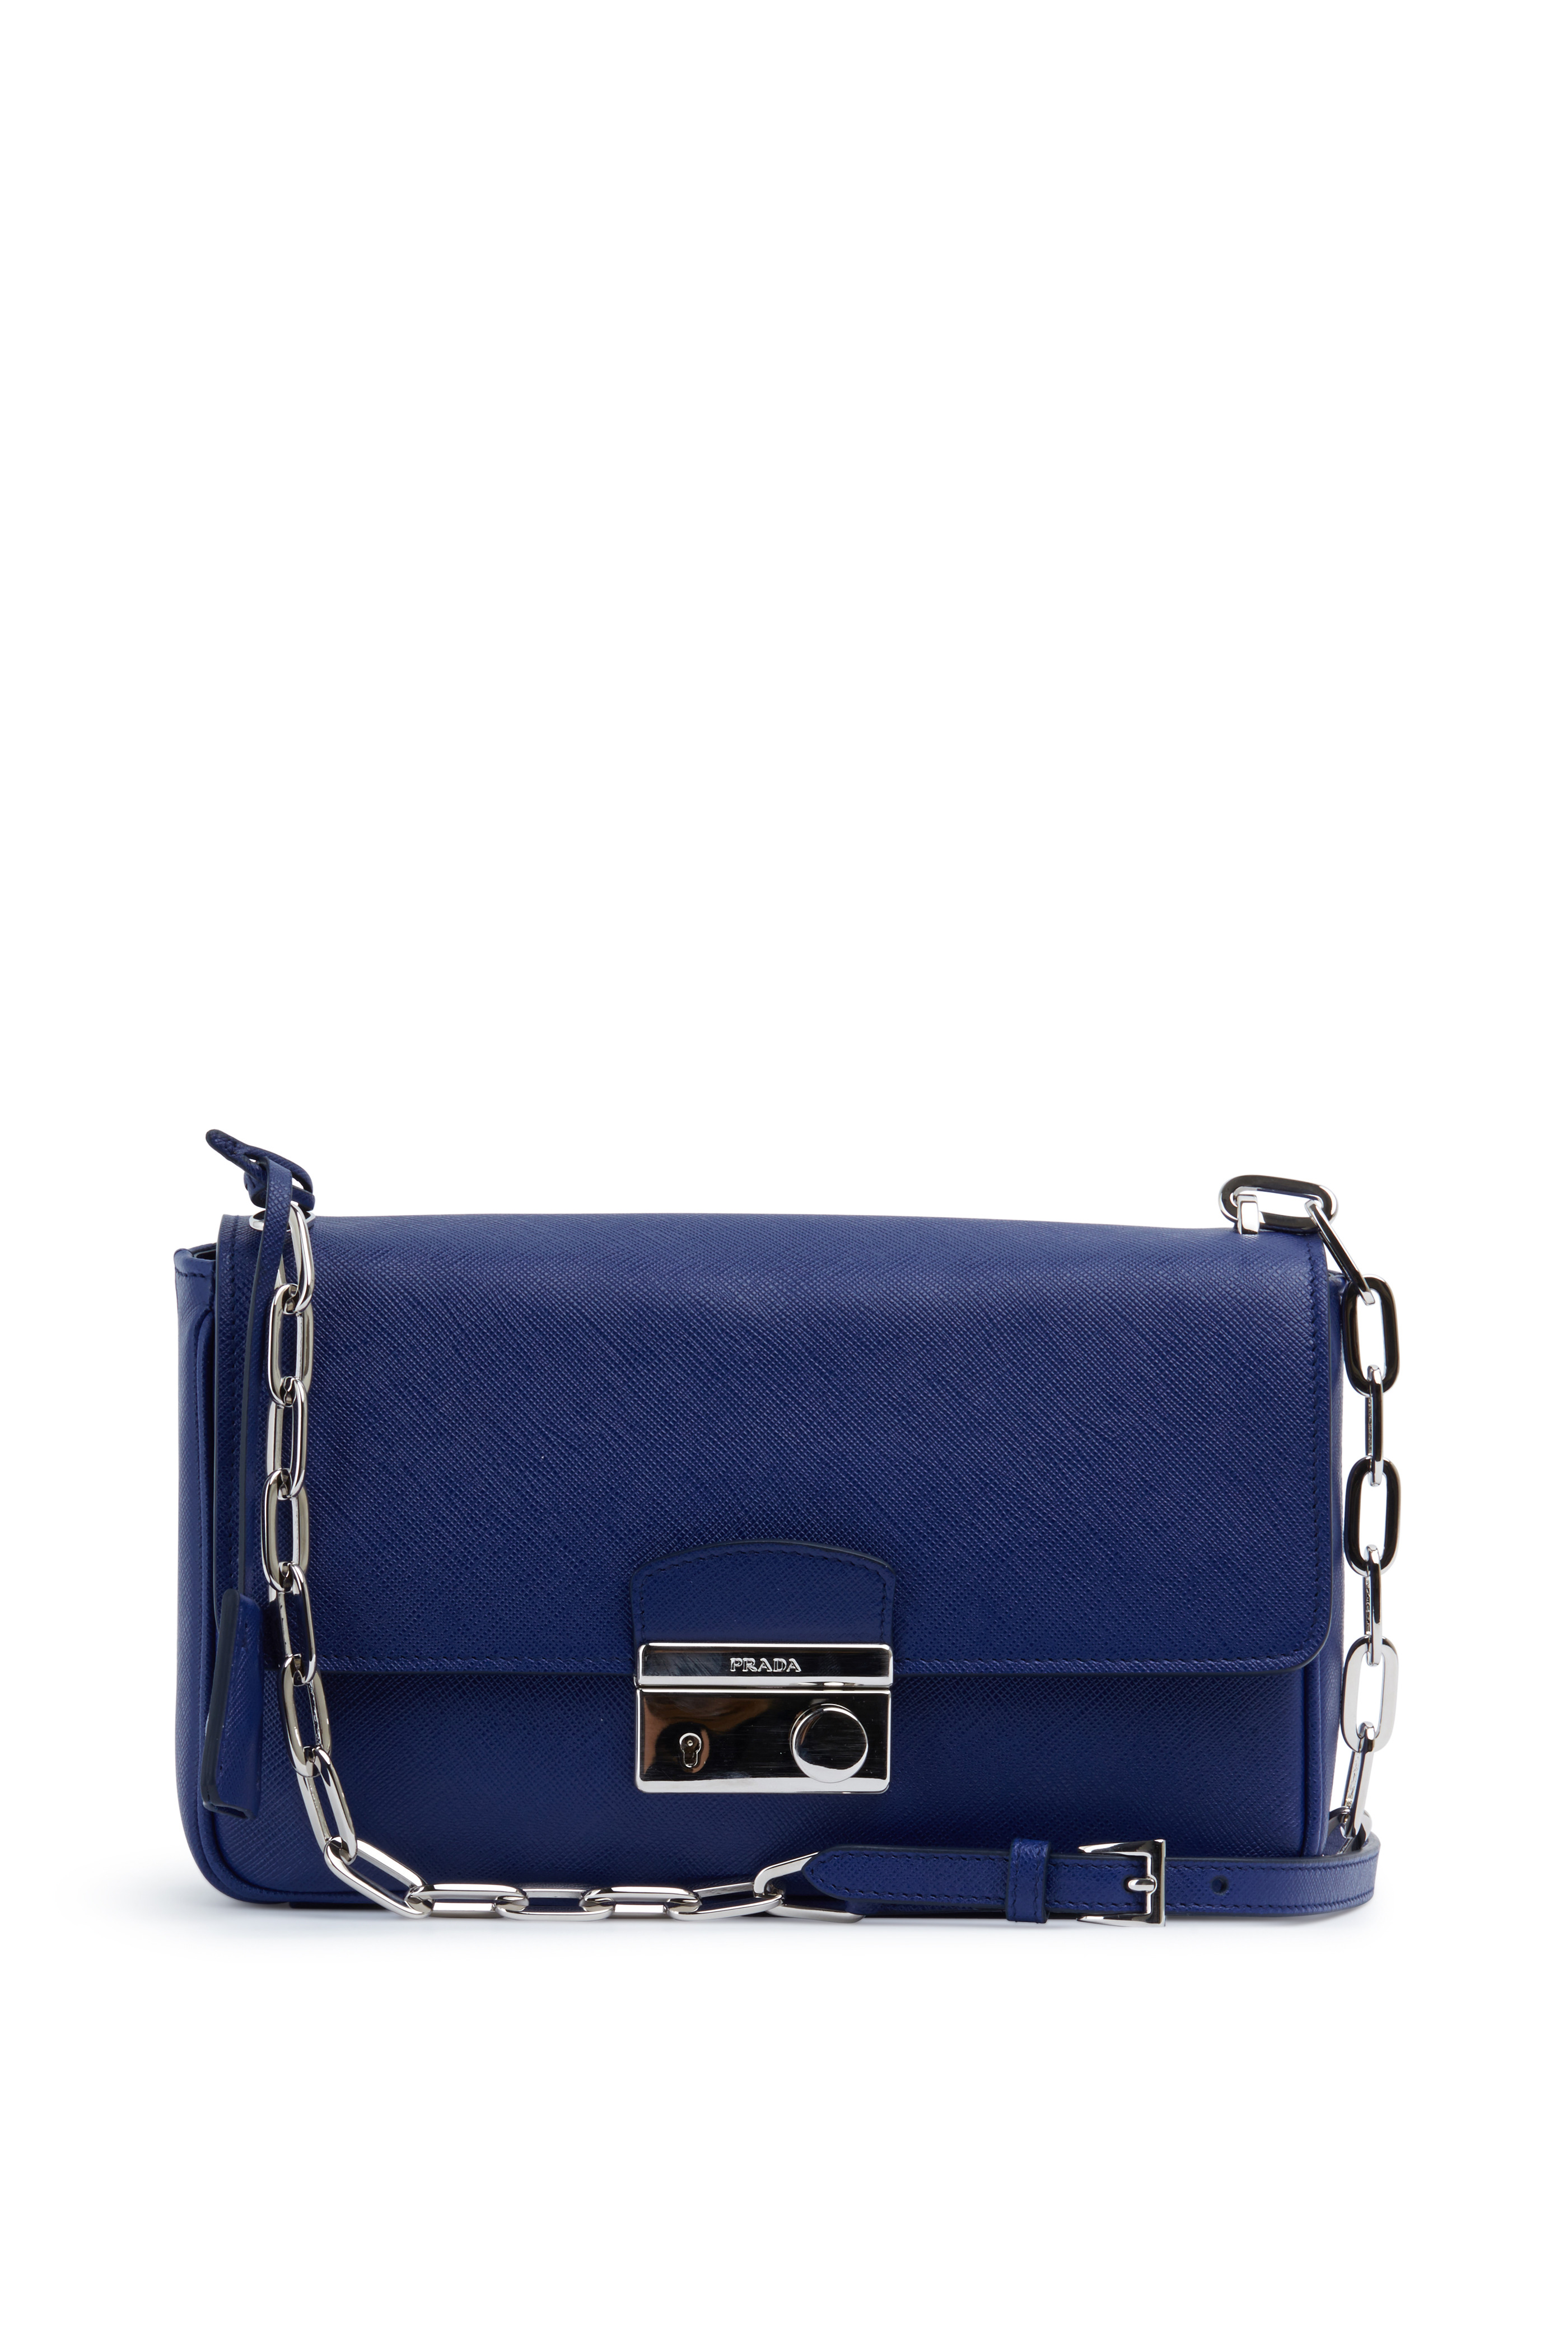 46bf9fd0 Prada - Navy Blue Saffiano Leather Chain Shoulder Bag | Mitchell Stores